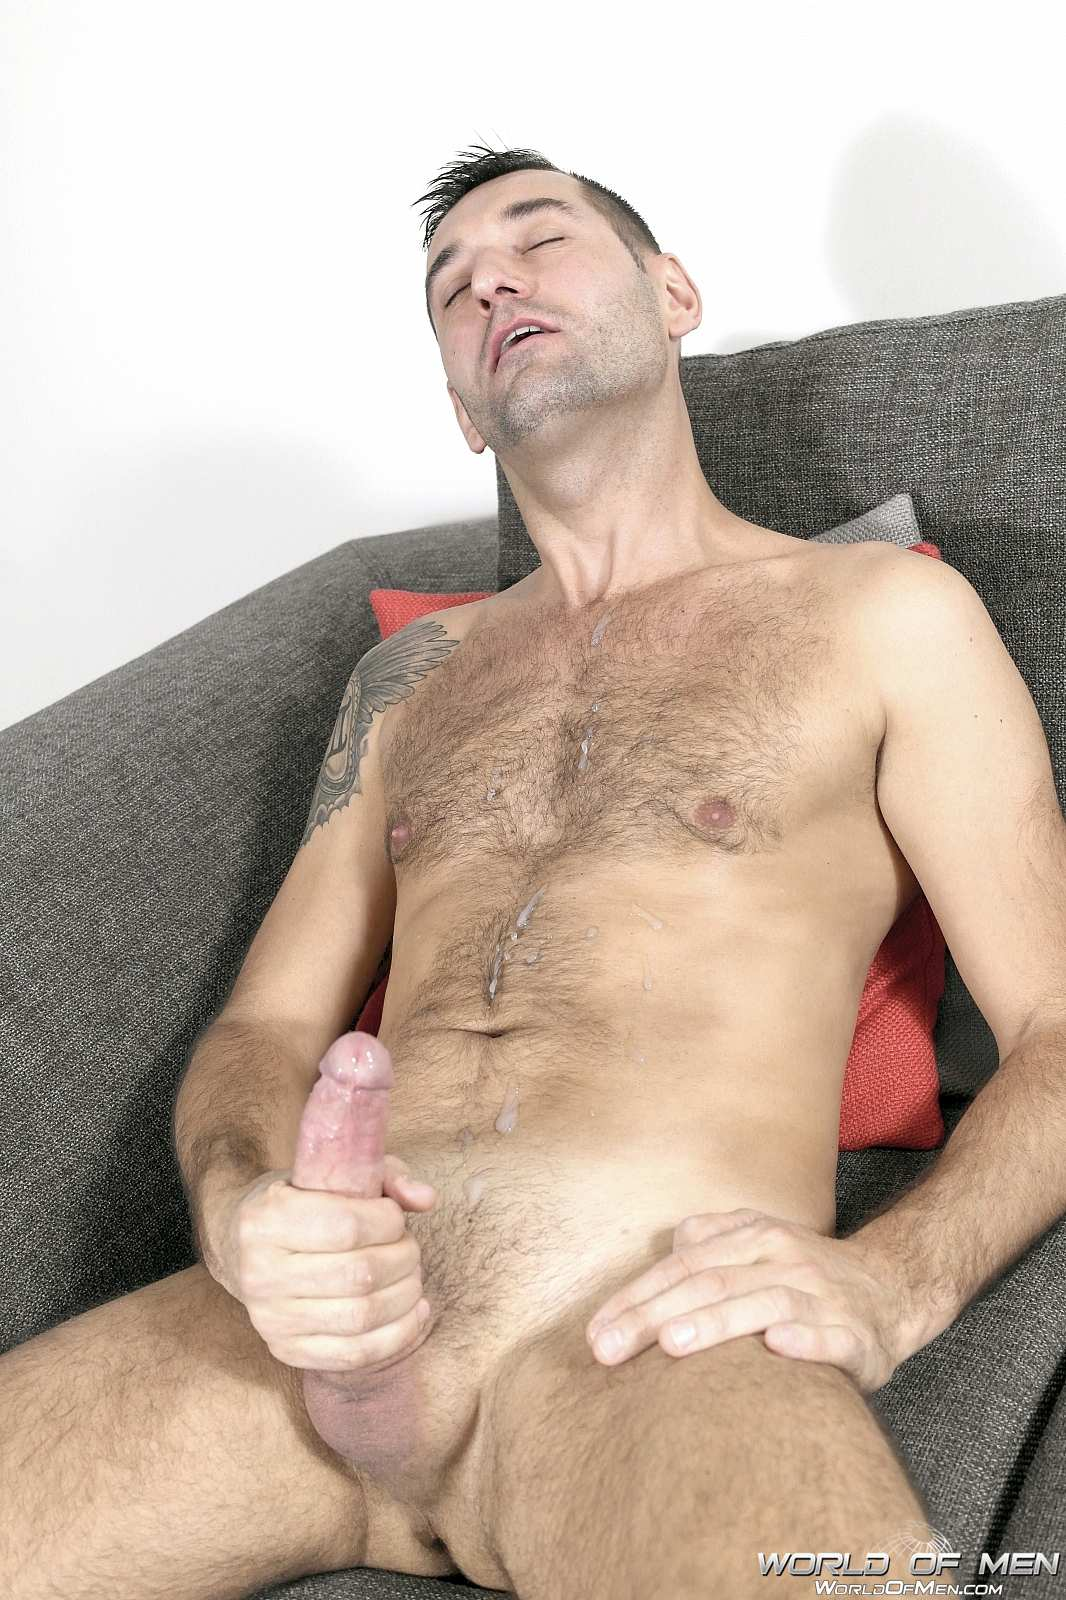 World Of Men Chris ADam Big Uncut Cock Jerk Off Masturbation Amateur Gay Porn 06 Hairy Sexy Stud Fingers His Ass And Plays With His Huge Uncut Cock